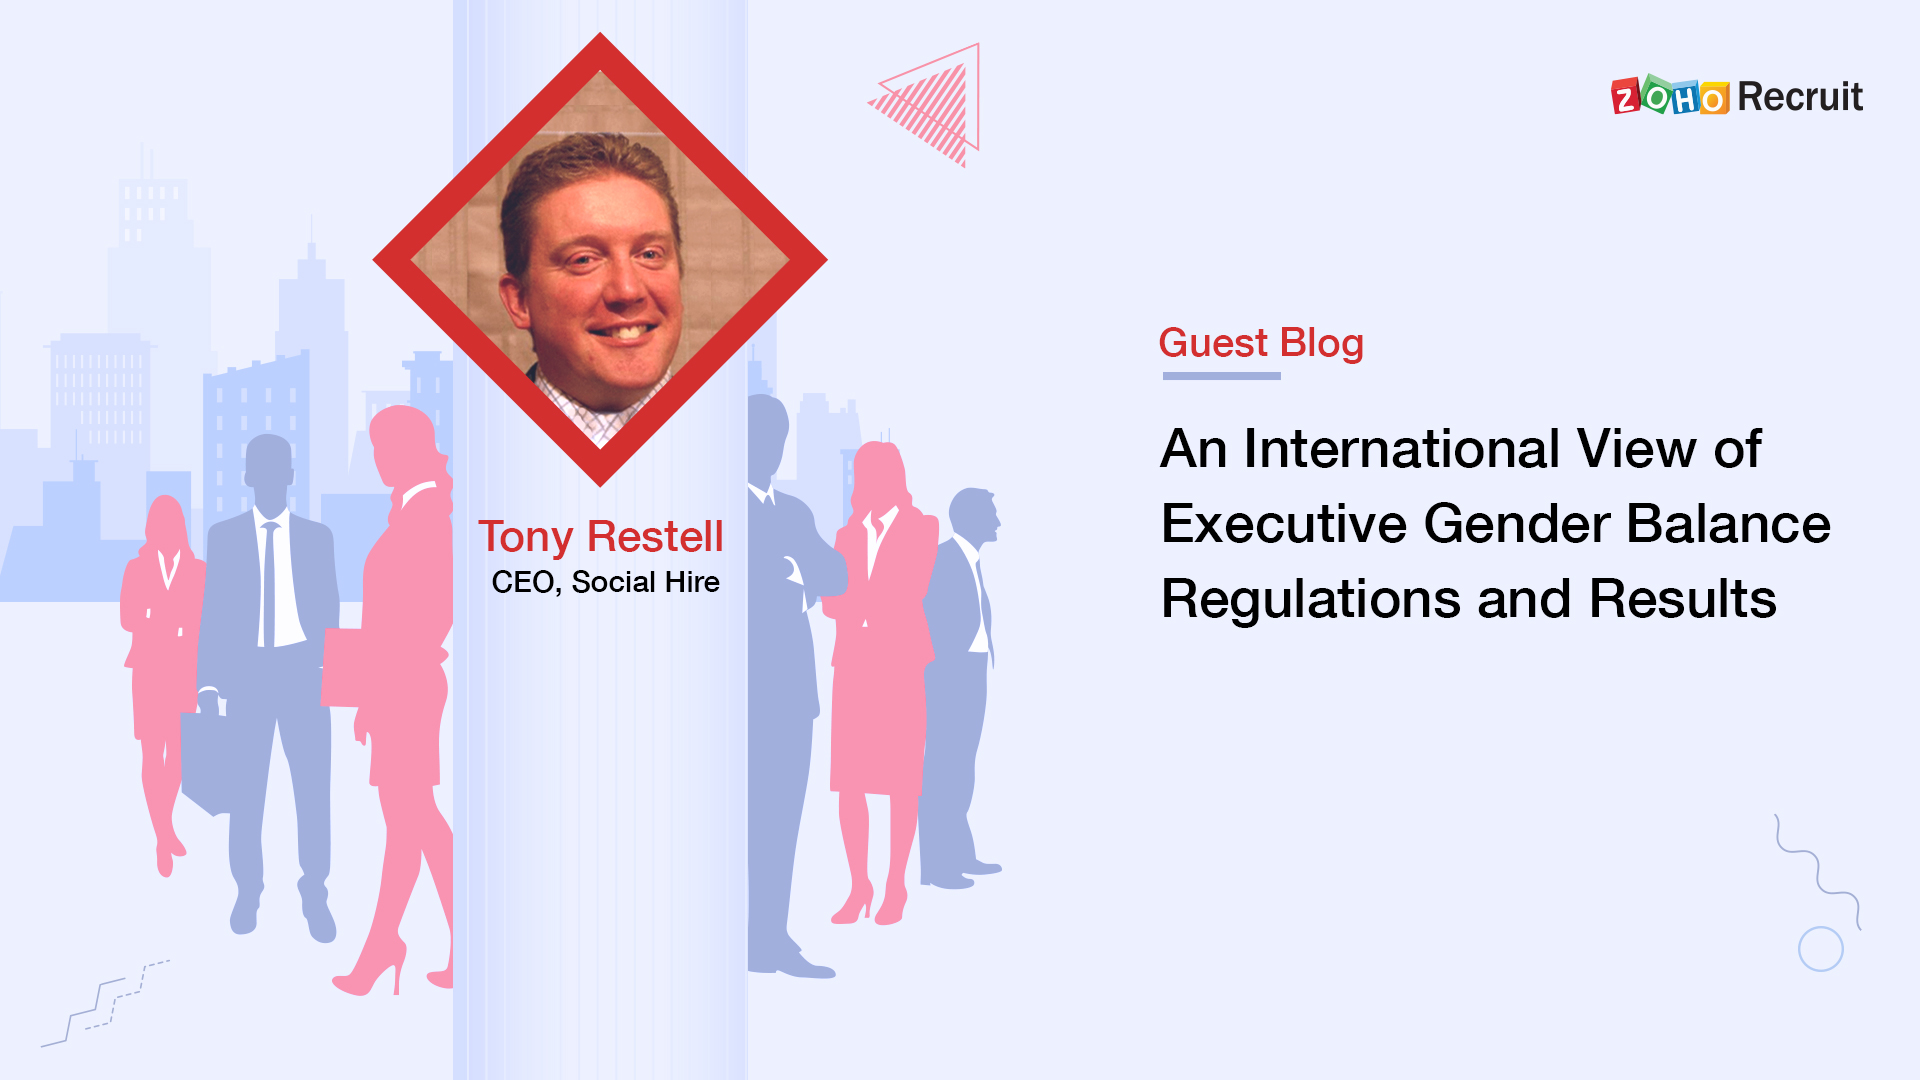 Expert Corner #3: An International View of Executive Gender Balance Regulations and Results